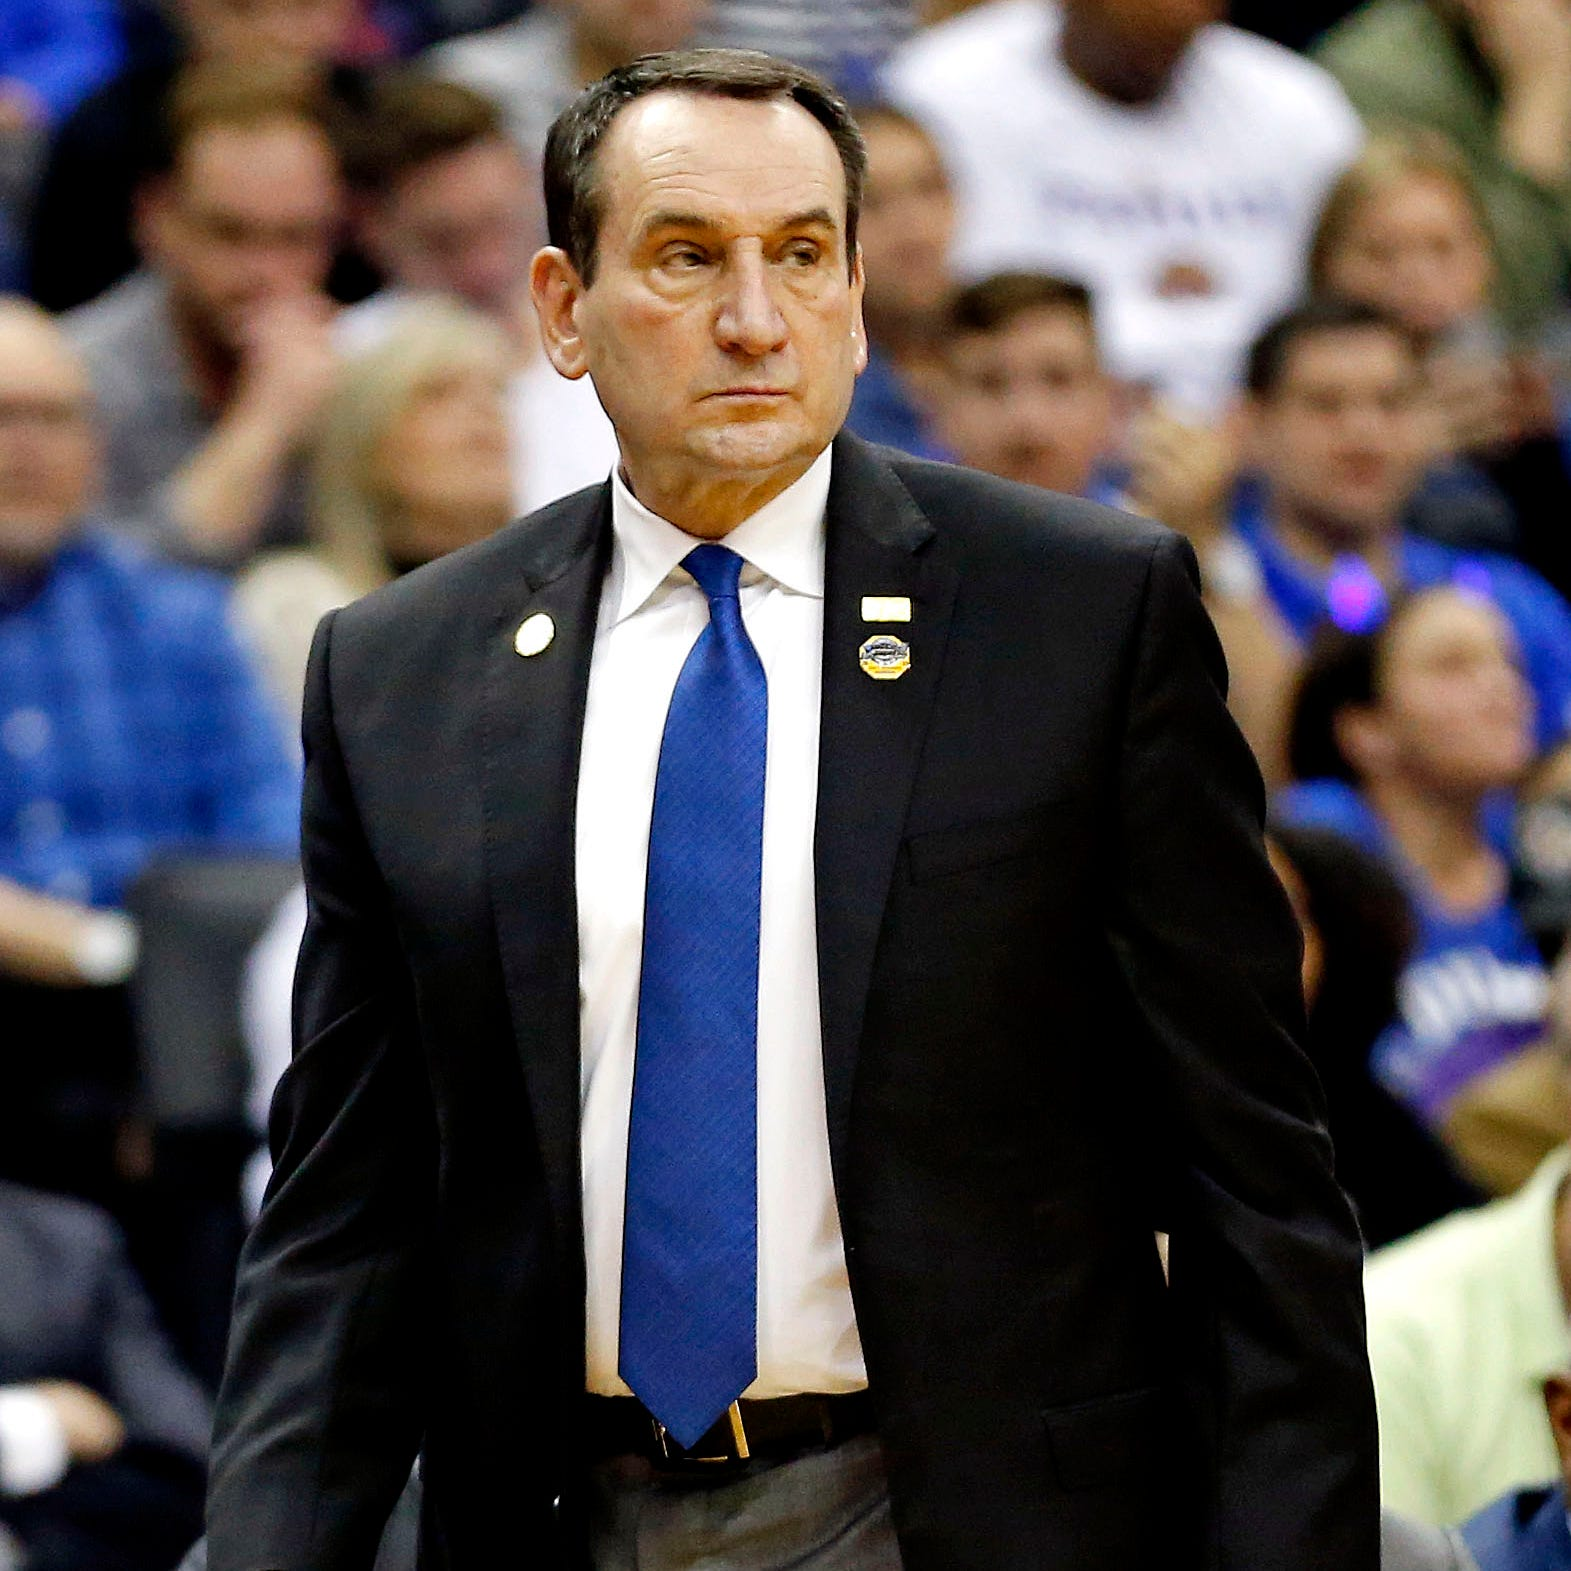 Mar 29, 2019; Washington, DC, USA; Duke Blue Devils head coach Mike Krzyzewski during the first half against the Virginia Tech Hokies in the semifinals of the east regional of the 2019 NCAA Tournament at Capital One Arena. Mandatory Credit: Amber Searls-USA TODAY Sports ORG XMIT: USATSI-401077 ORIG FILE ID:  20190329_pjc_si2_792.JPG